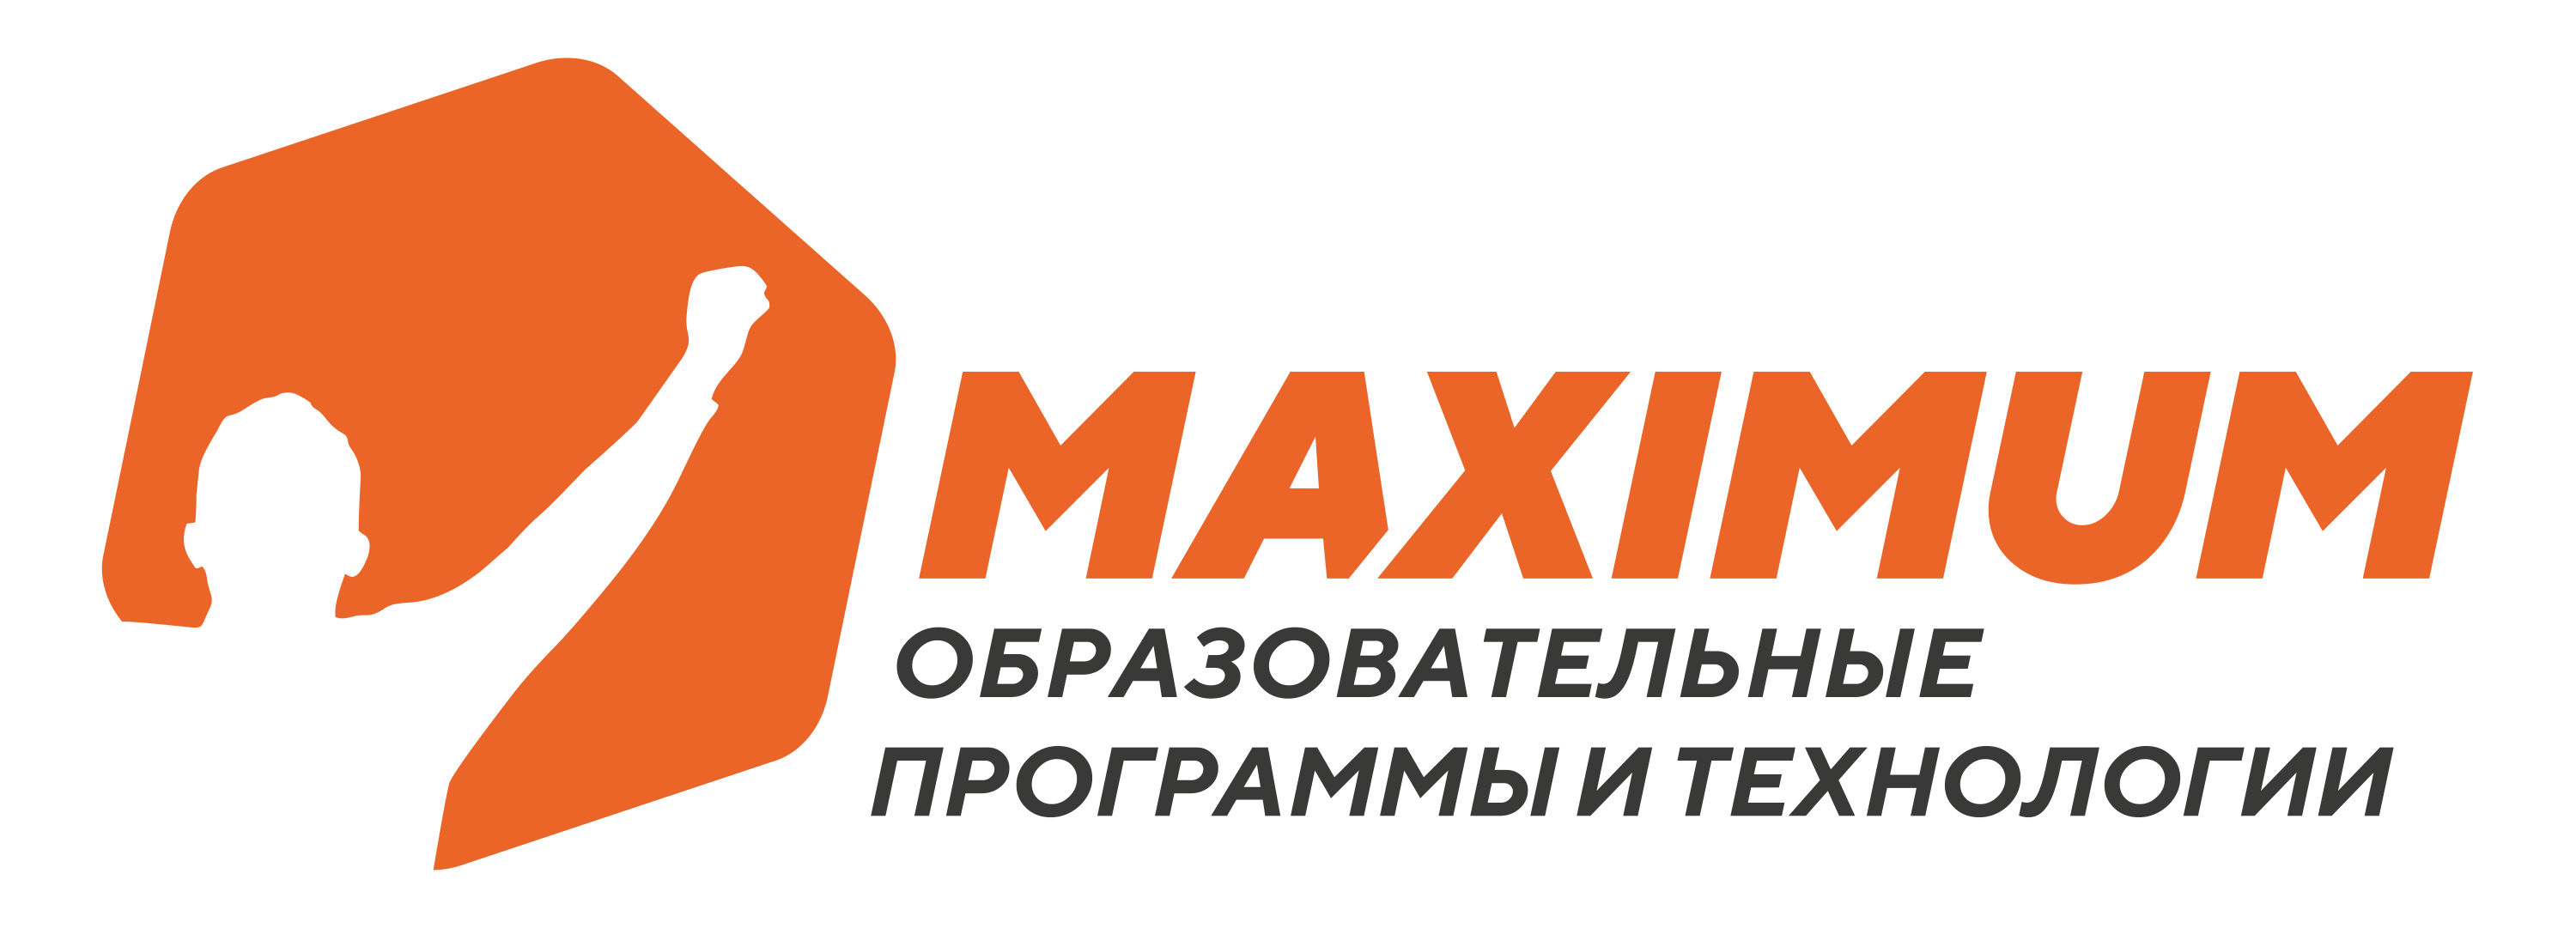 Логотип компании «MAXIMUM EDUCATION»